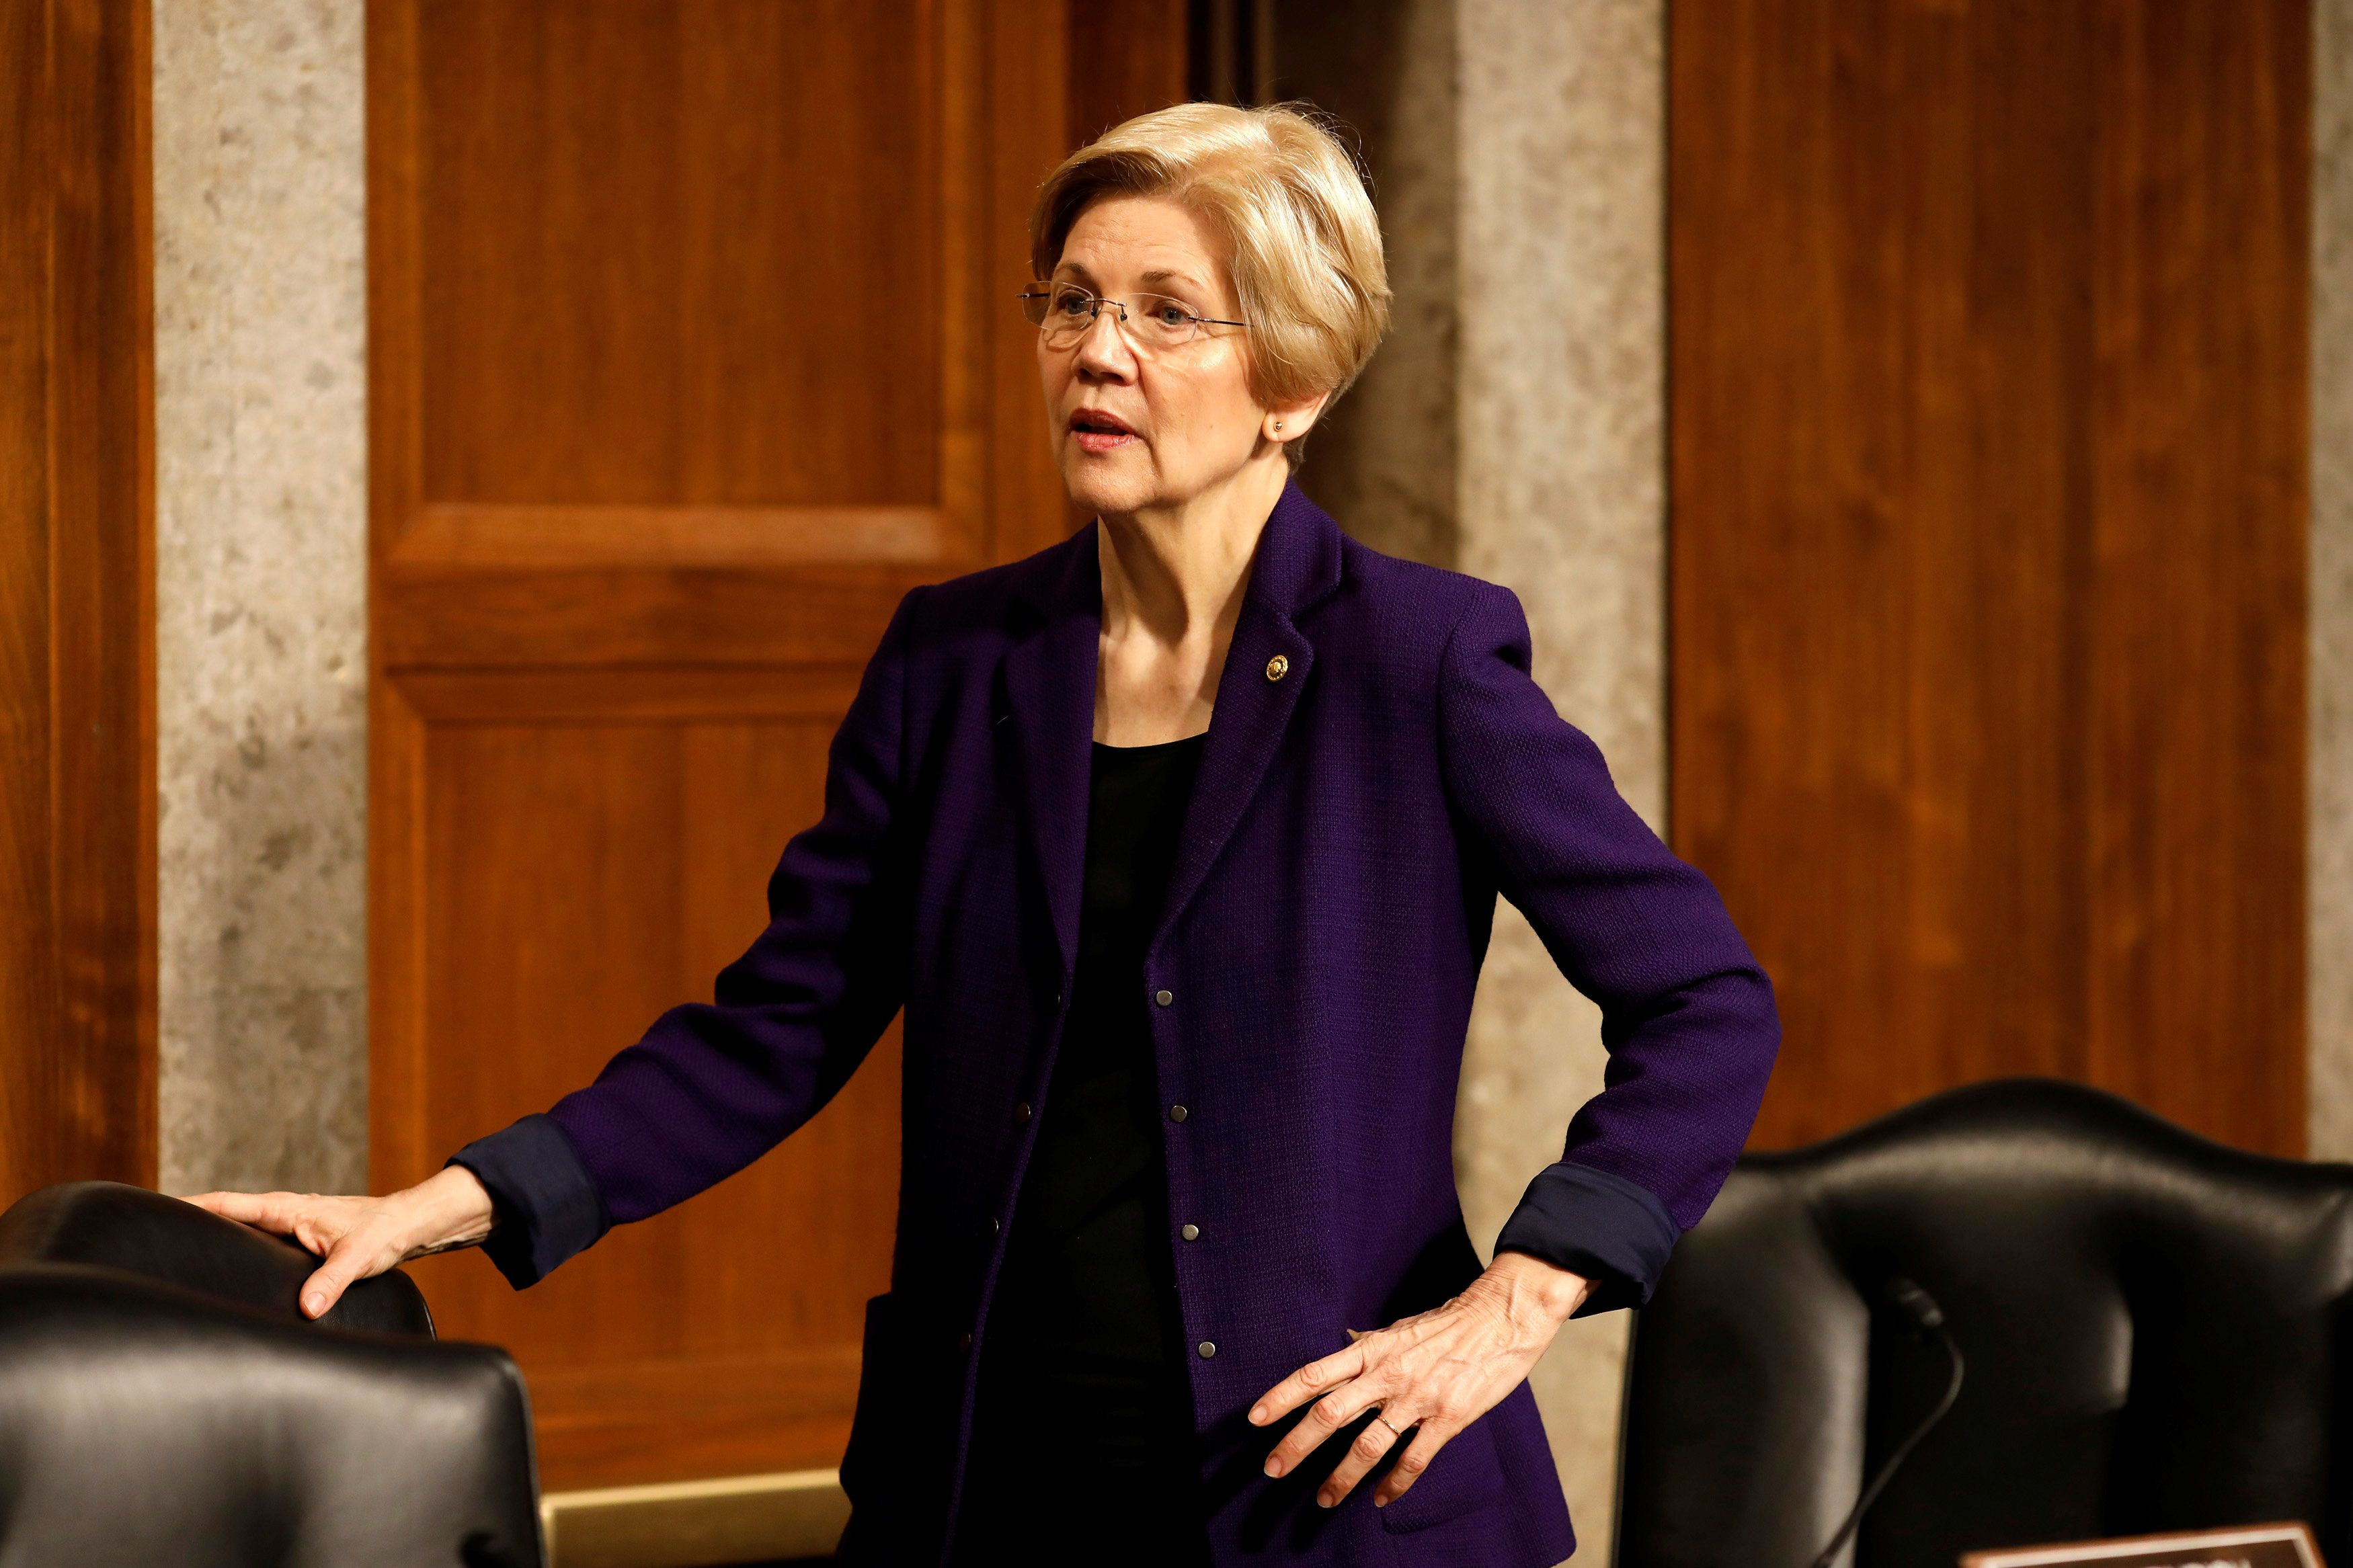 Senator Elizabeth Warren (D-MA) arrives for a Senate Armed Services Committee hearing on the Marines United Facebook page on Capitol Hill in Washington, D.C., U.S. March 14, 2017.  REUTERS/Aaron P. Bernstein